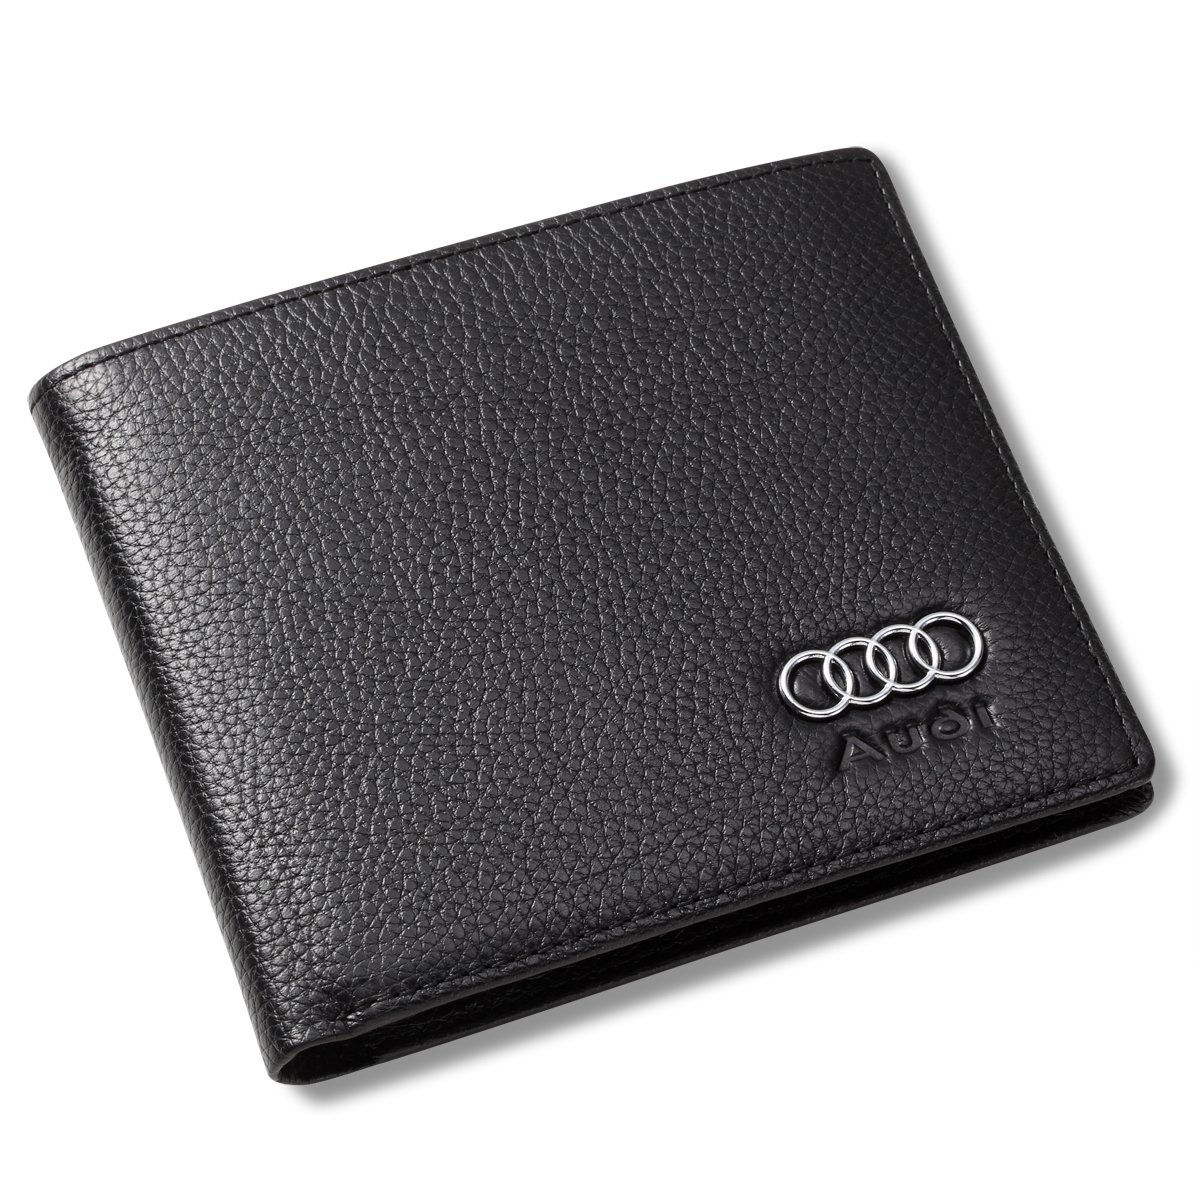 Audi Bifold Wallet with 3 Credit Card Slots and ID Window - Genuine Leather by Leather Wallets